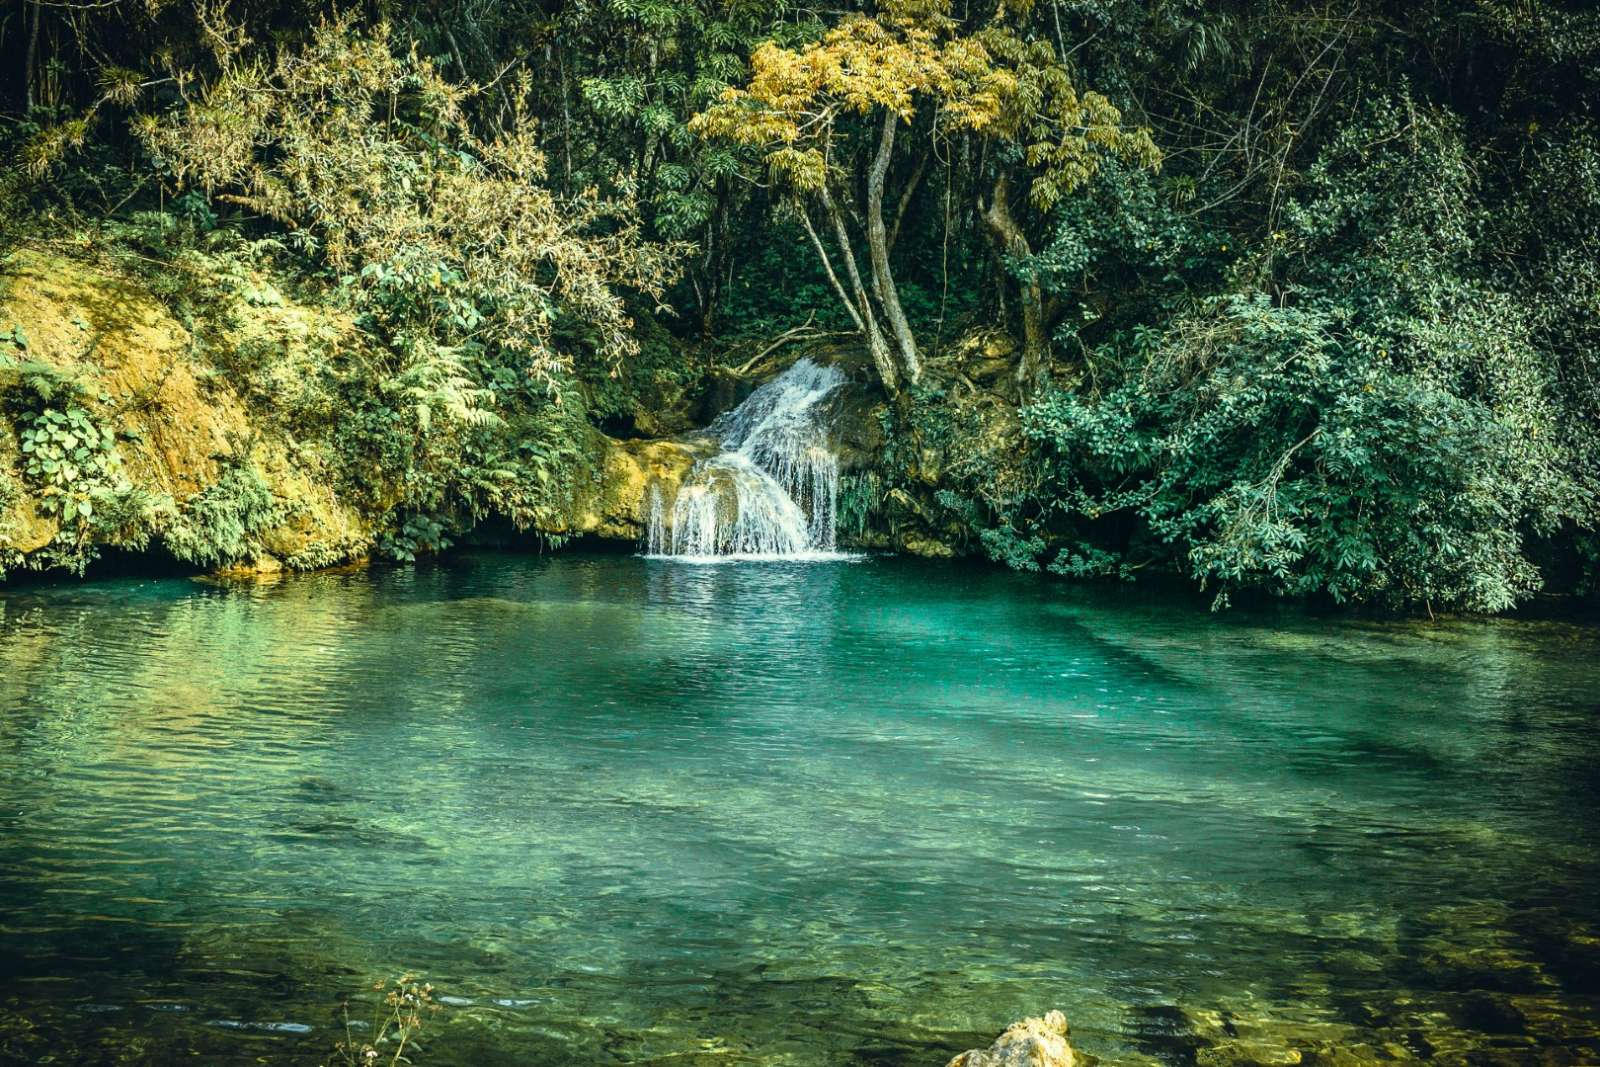 Waterfall In National Park near Trinidad, Cuba